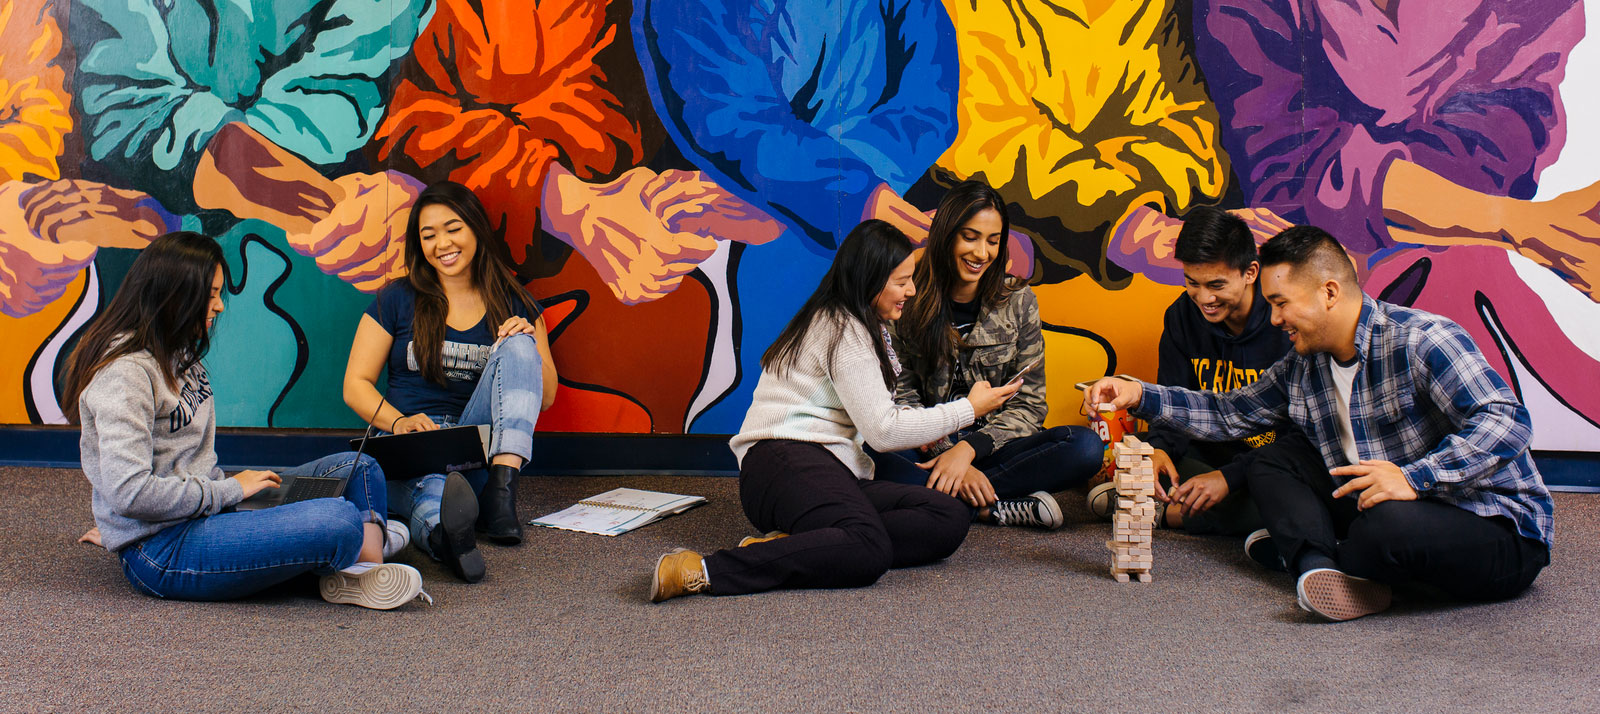 People at an Asian Pacific Cultural Center play games